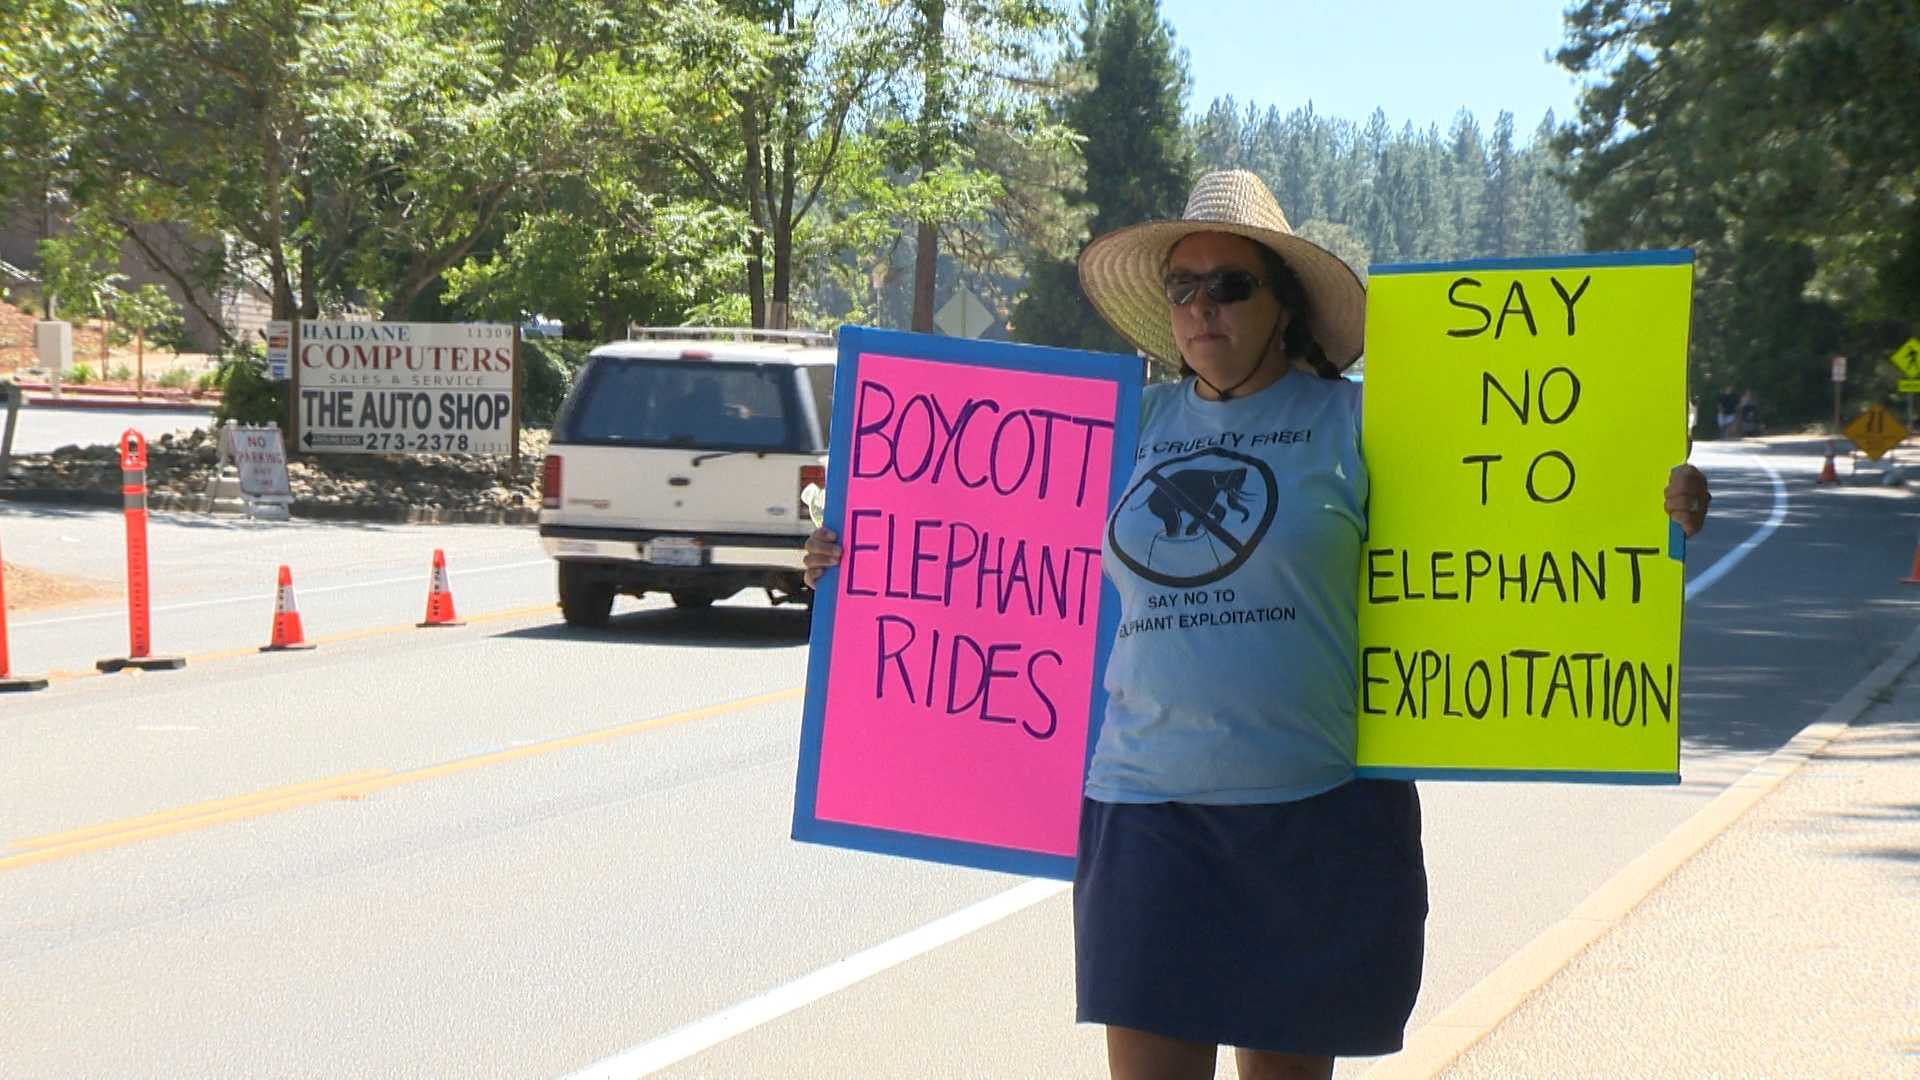 Guests at the Nevada County Fairgrounds take rides on two elephants. The elephant rides sparked protests outside the gates (Aug. 7, 2013).